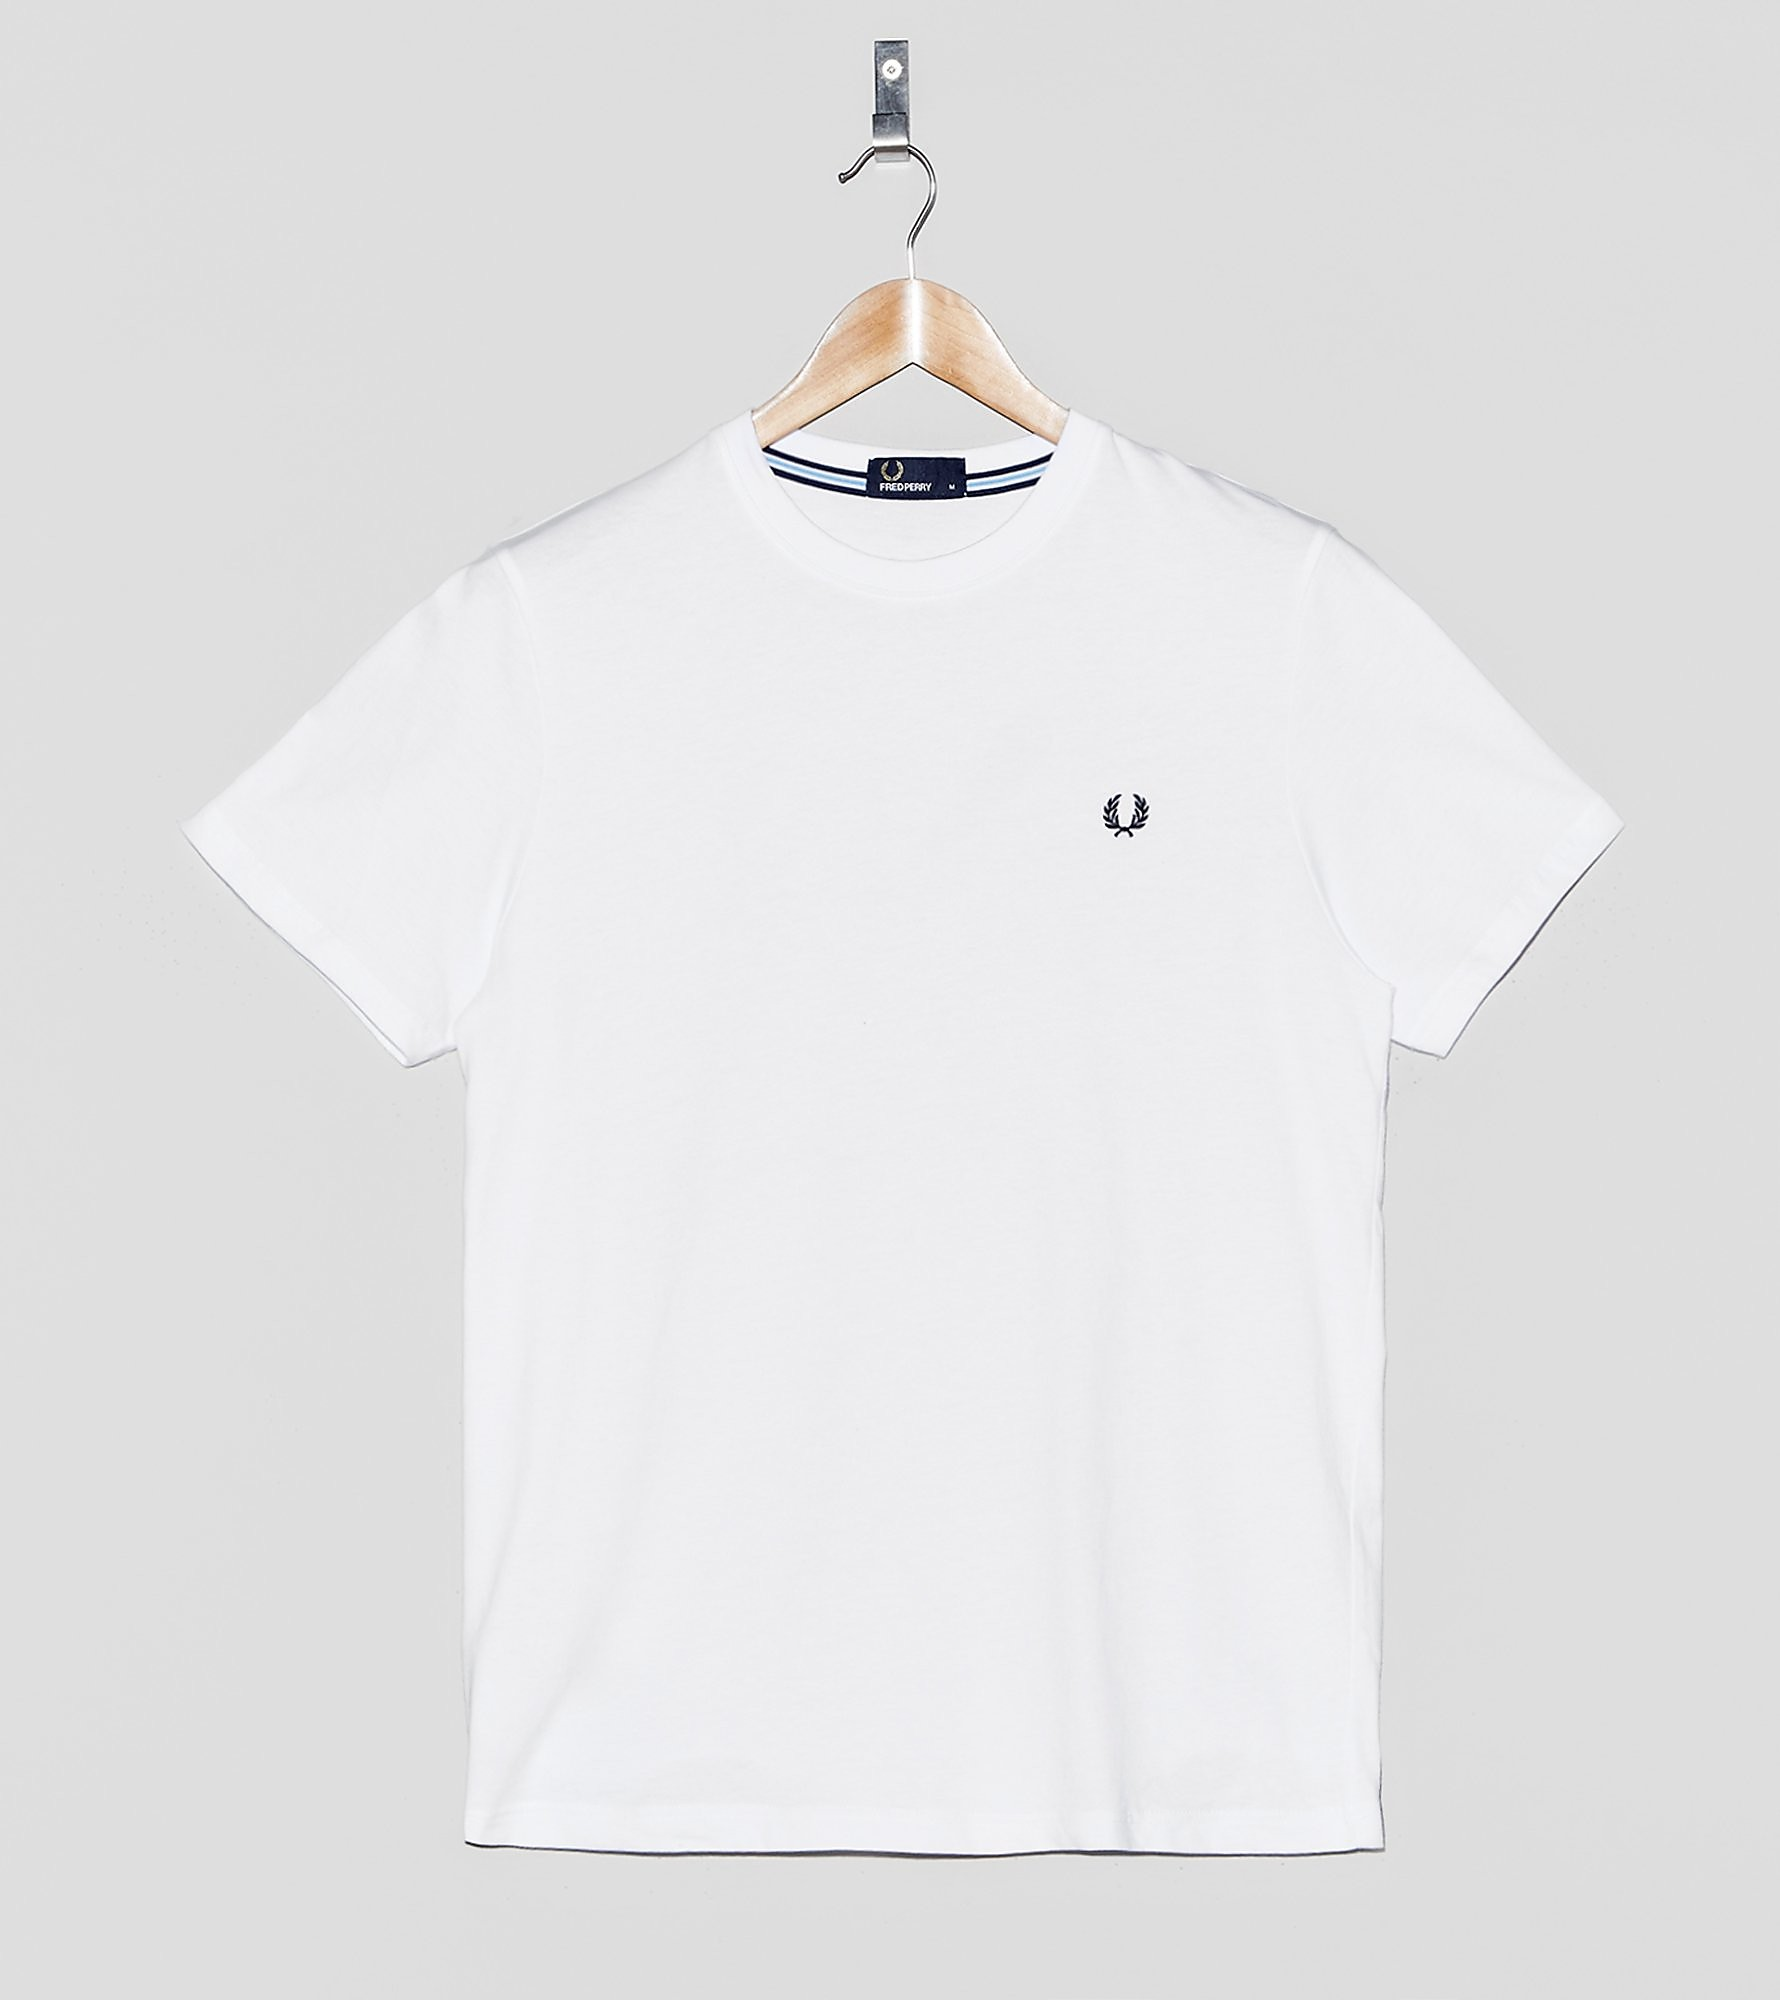 Fred Perry Camiseta Crew Neck, blanco